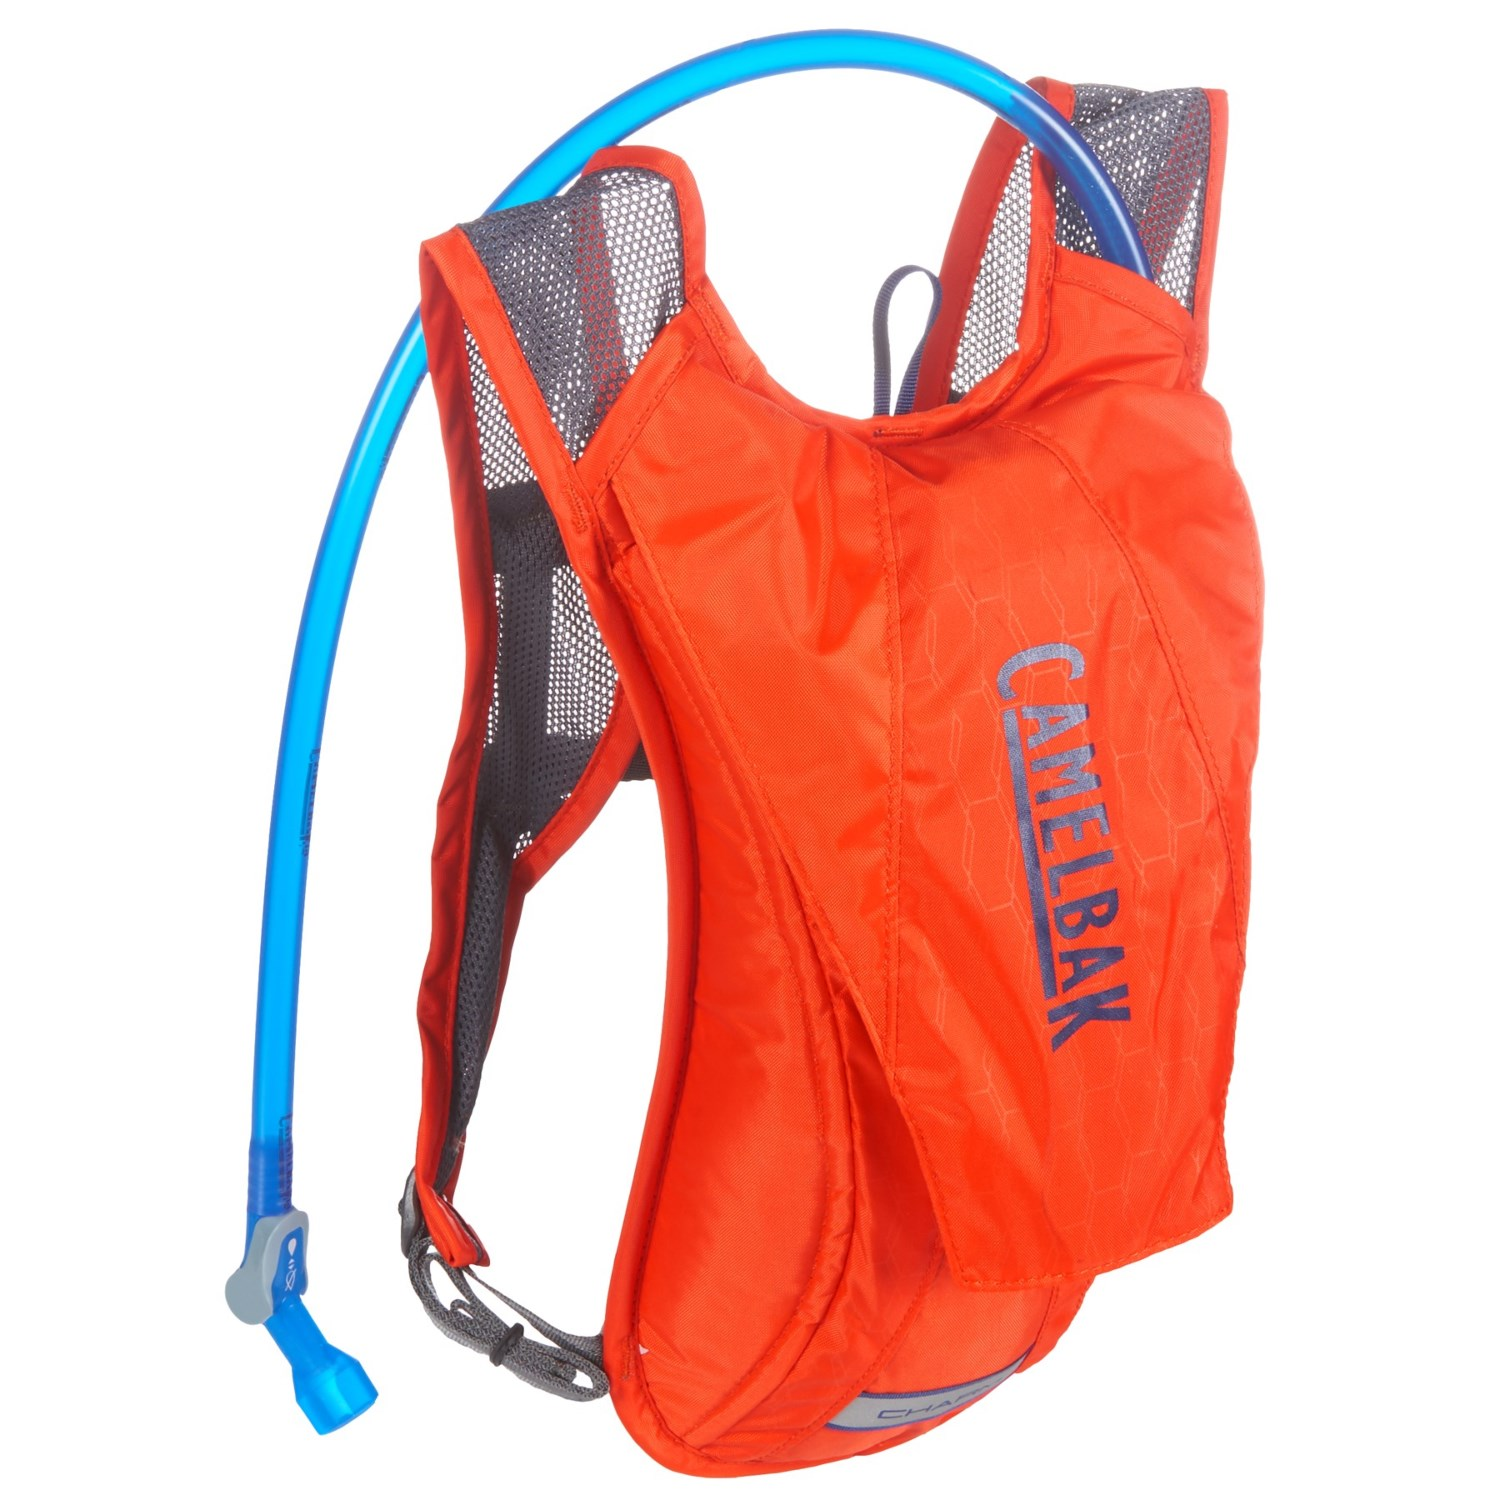 Backpack Hydration System - CEAGESP